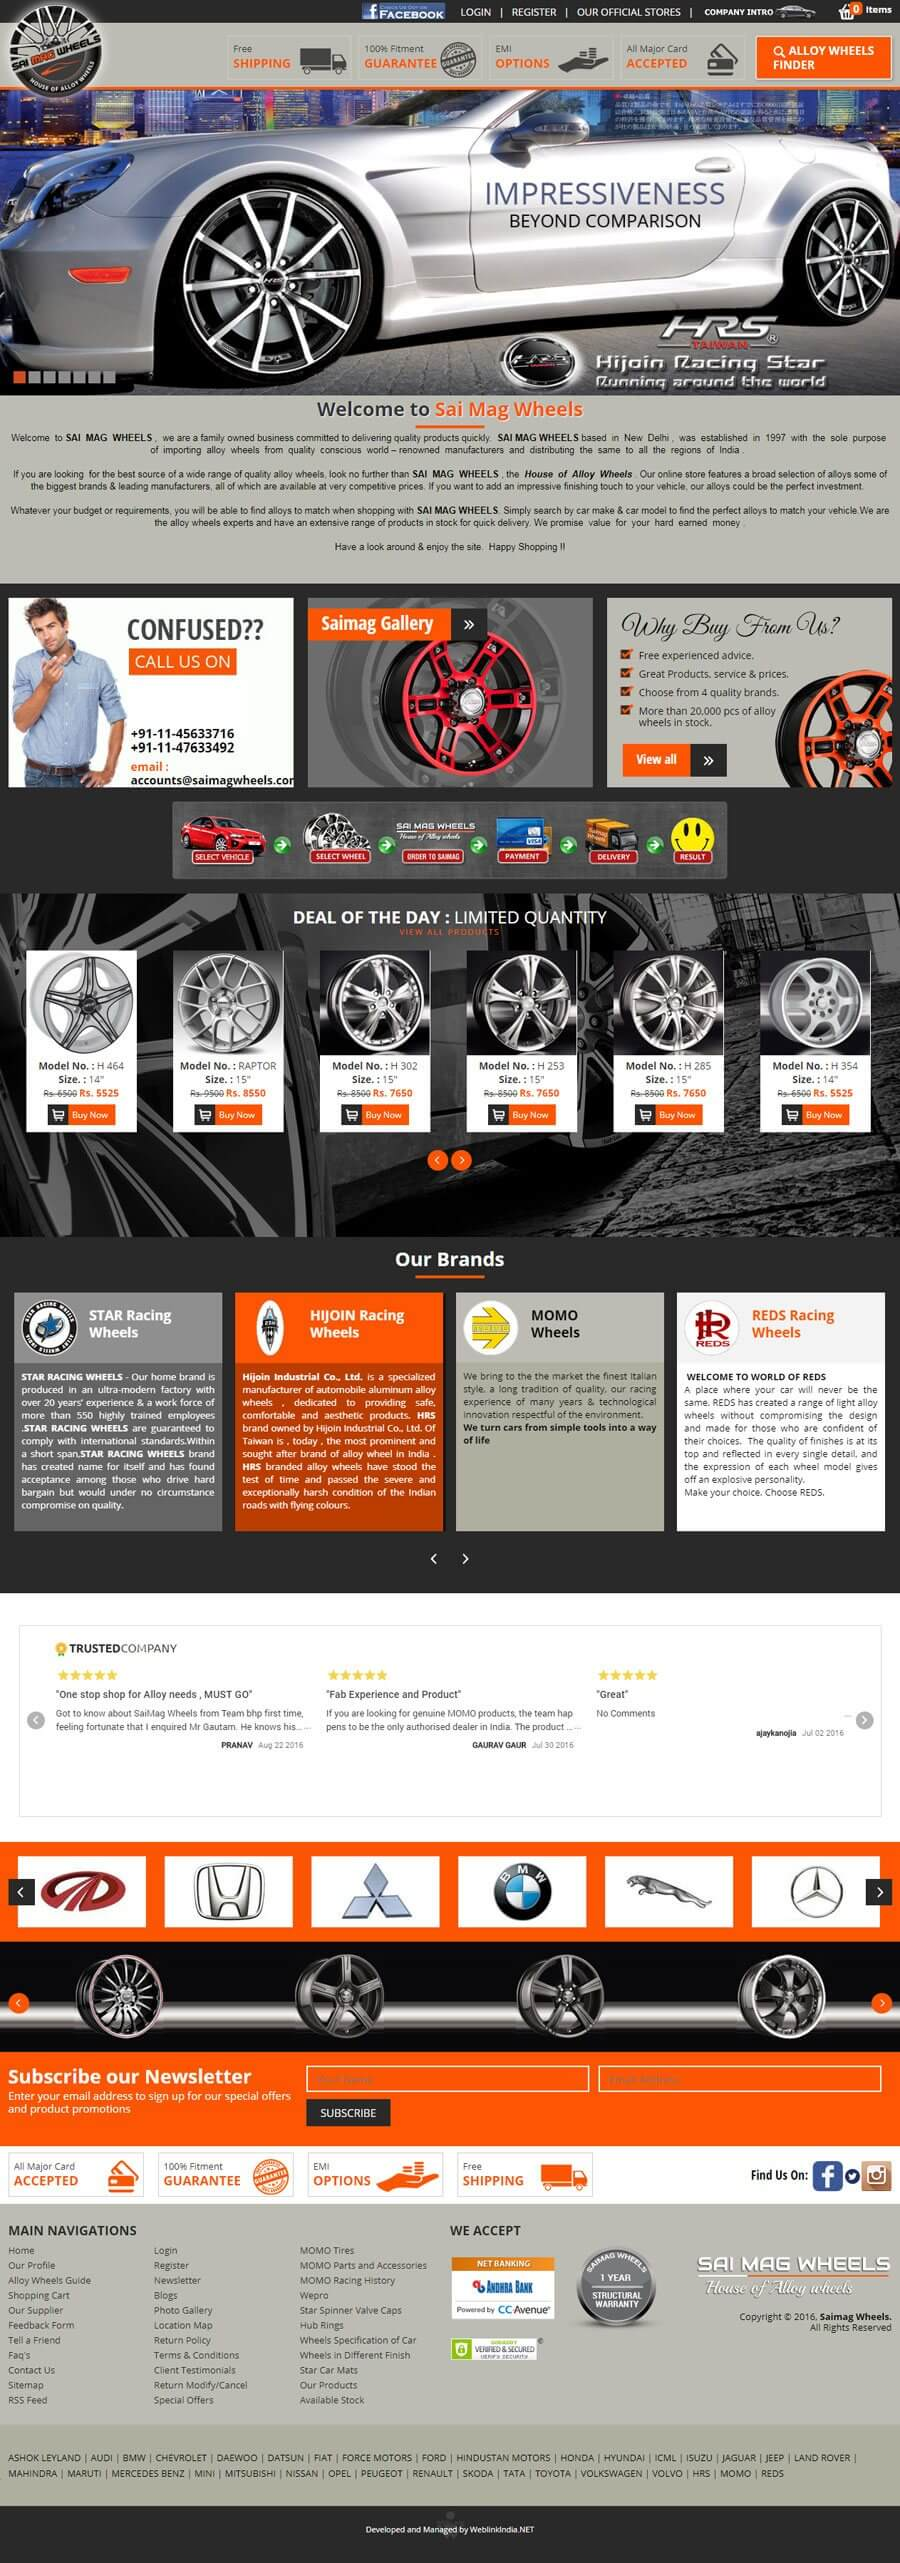 Sai Mag Wheels - SEO Case Studies